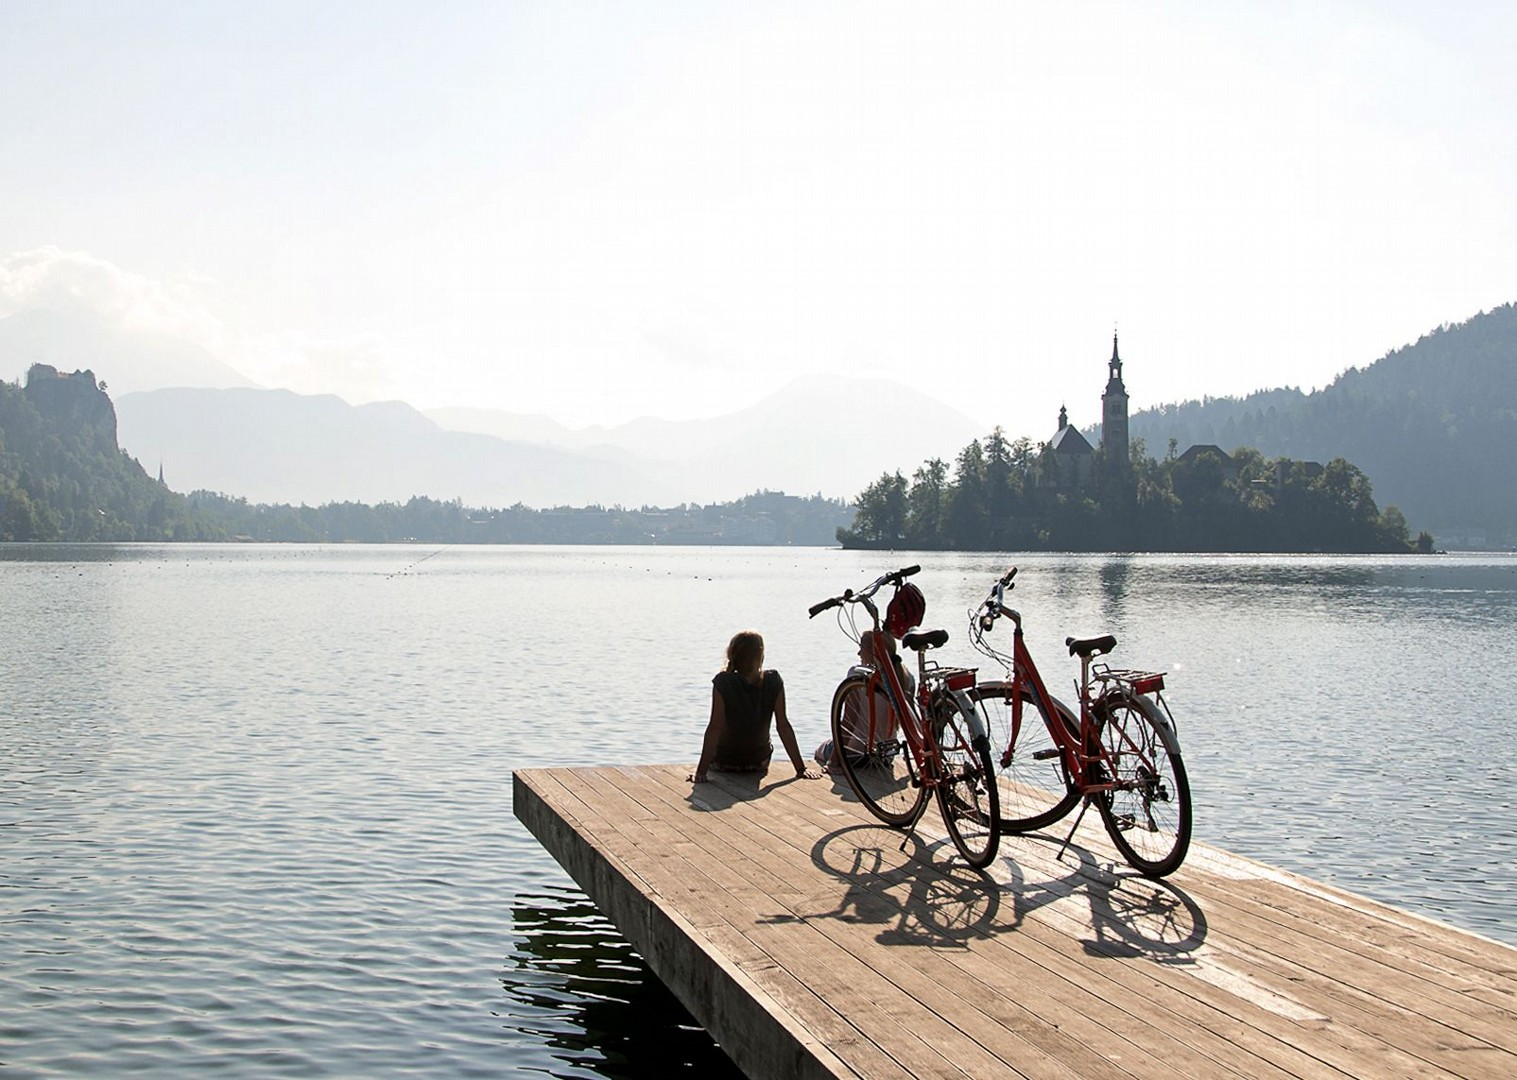 lake-bled-slovenia-family-cycling-holiday.jpg - Slovenia - Magical Lake Bled - Self-Guided Family Cycling Holiday - Family Cycling